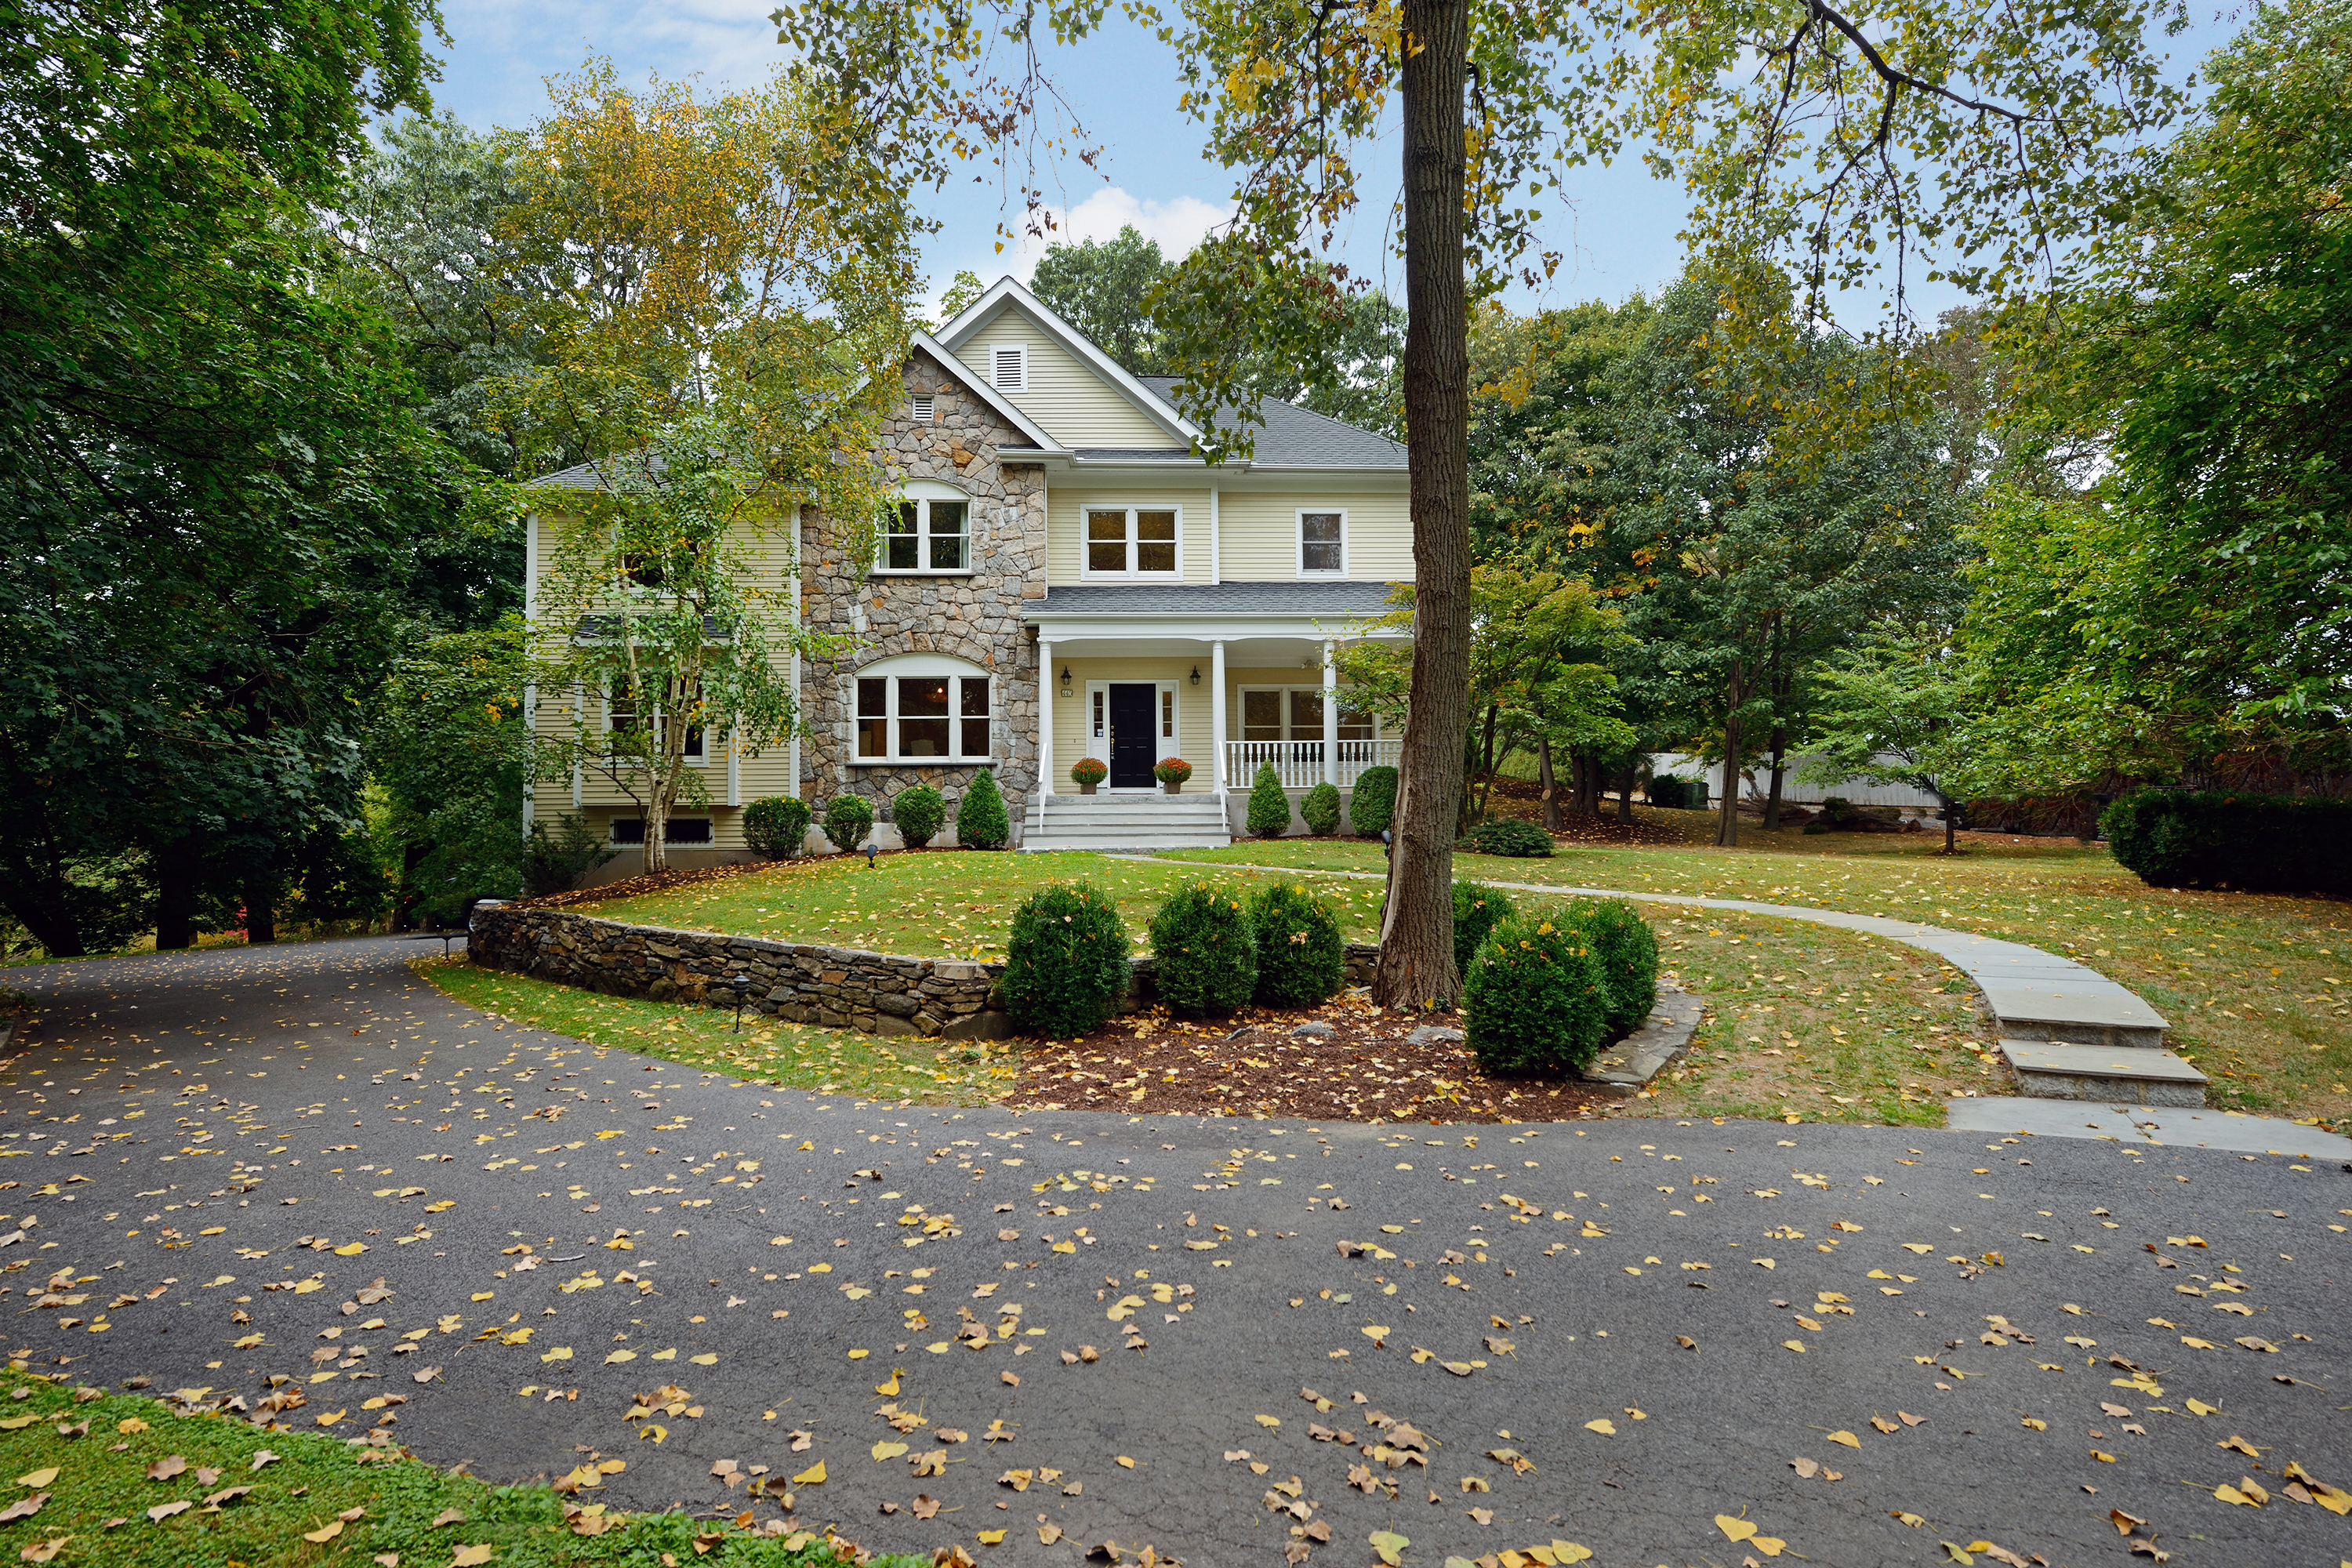 Property For Sale at Stone and clapboard Colonial